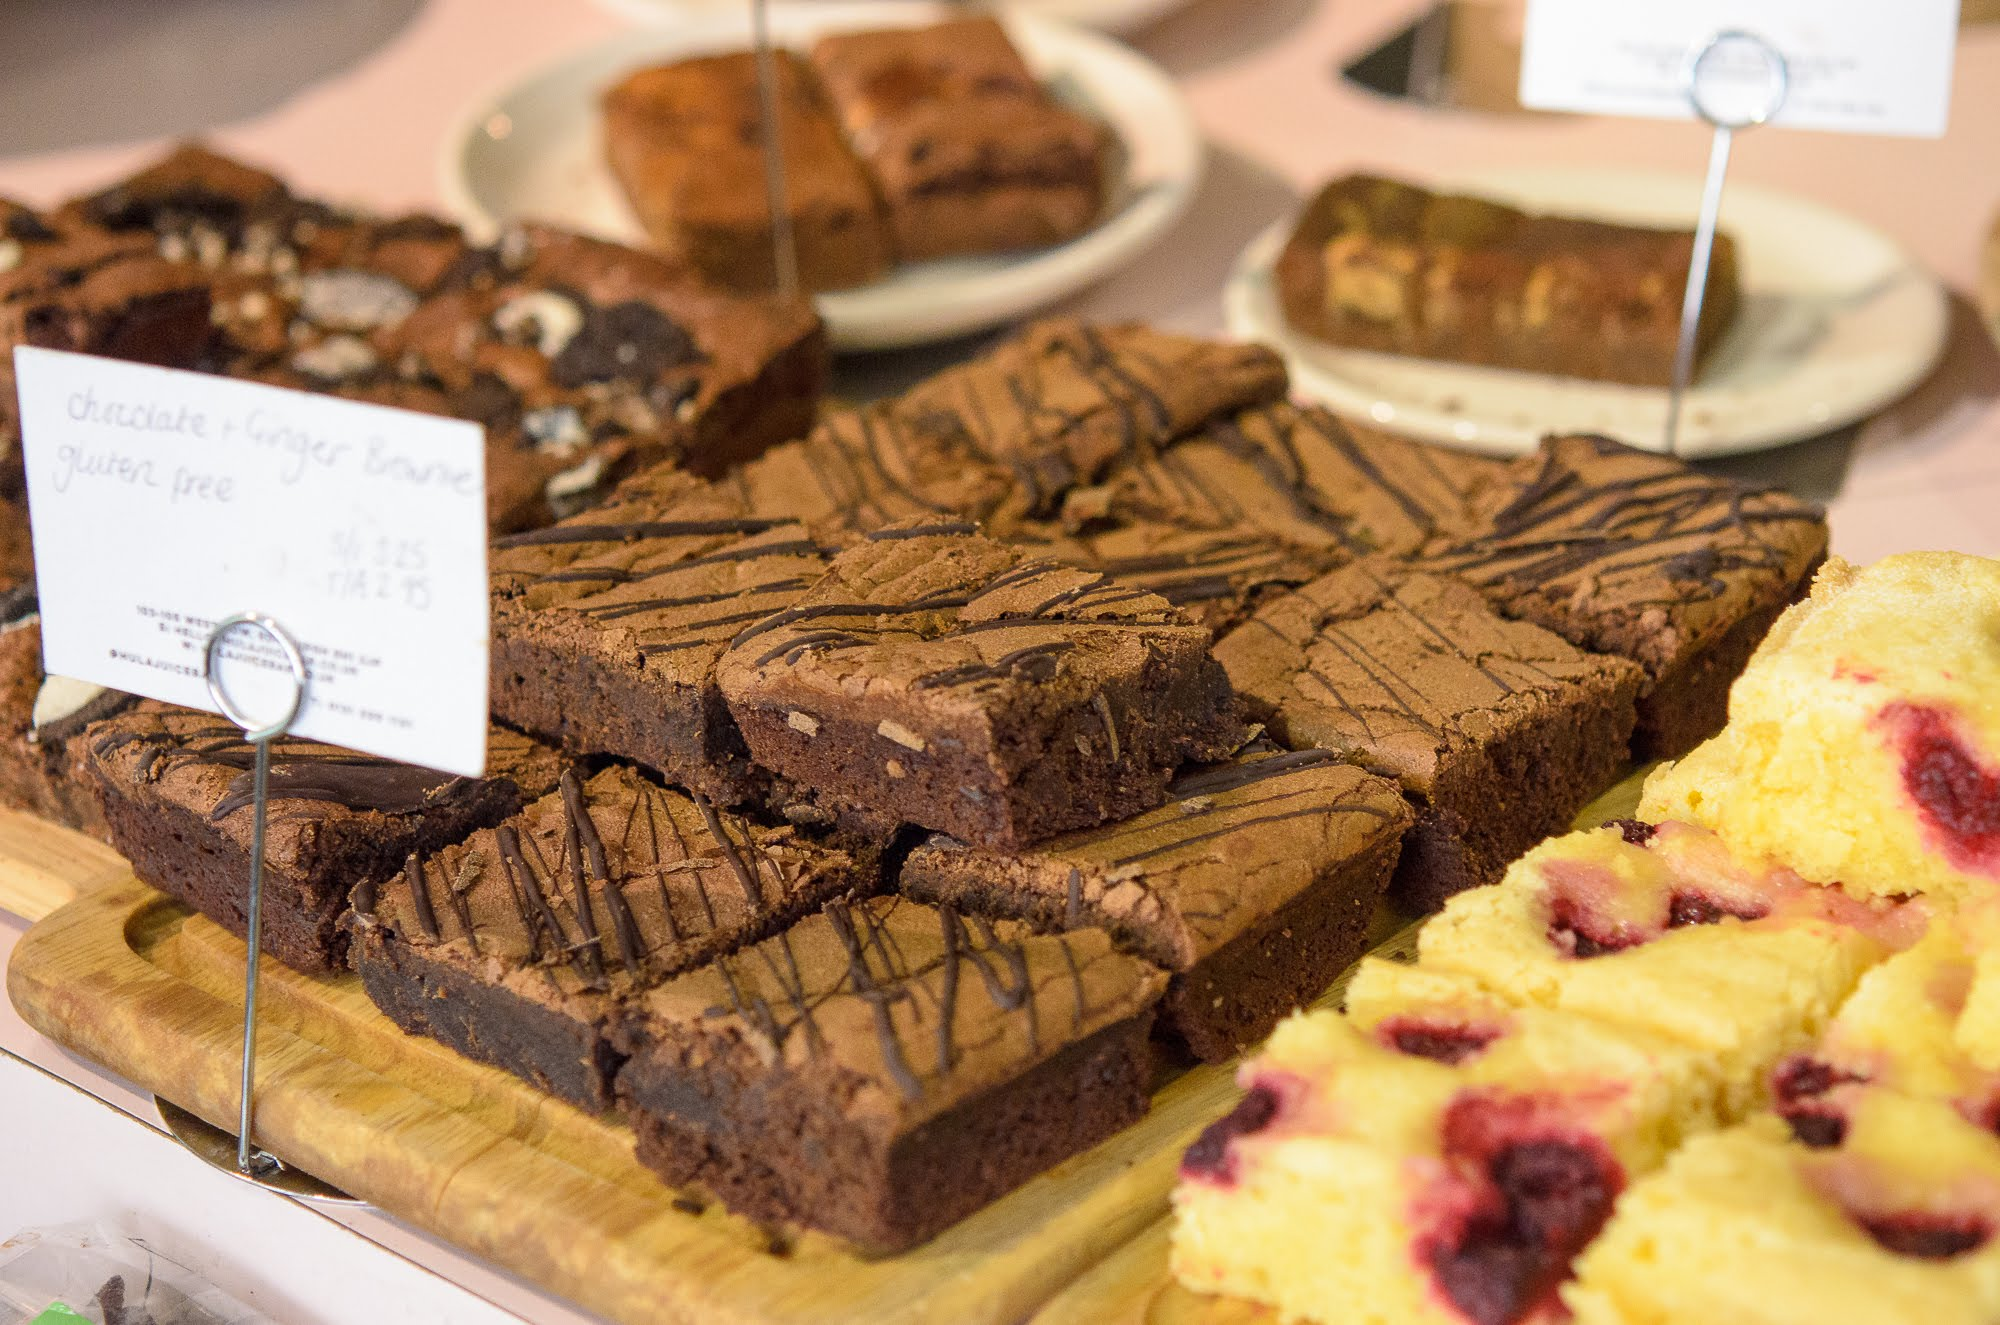 Hula Juice Cafe also have sweet treats for Gluten Free and Vegan diets